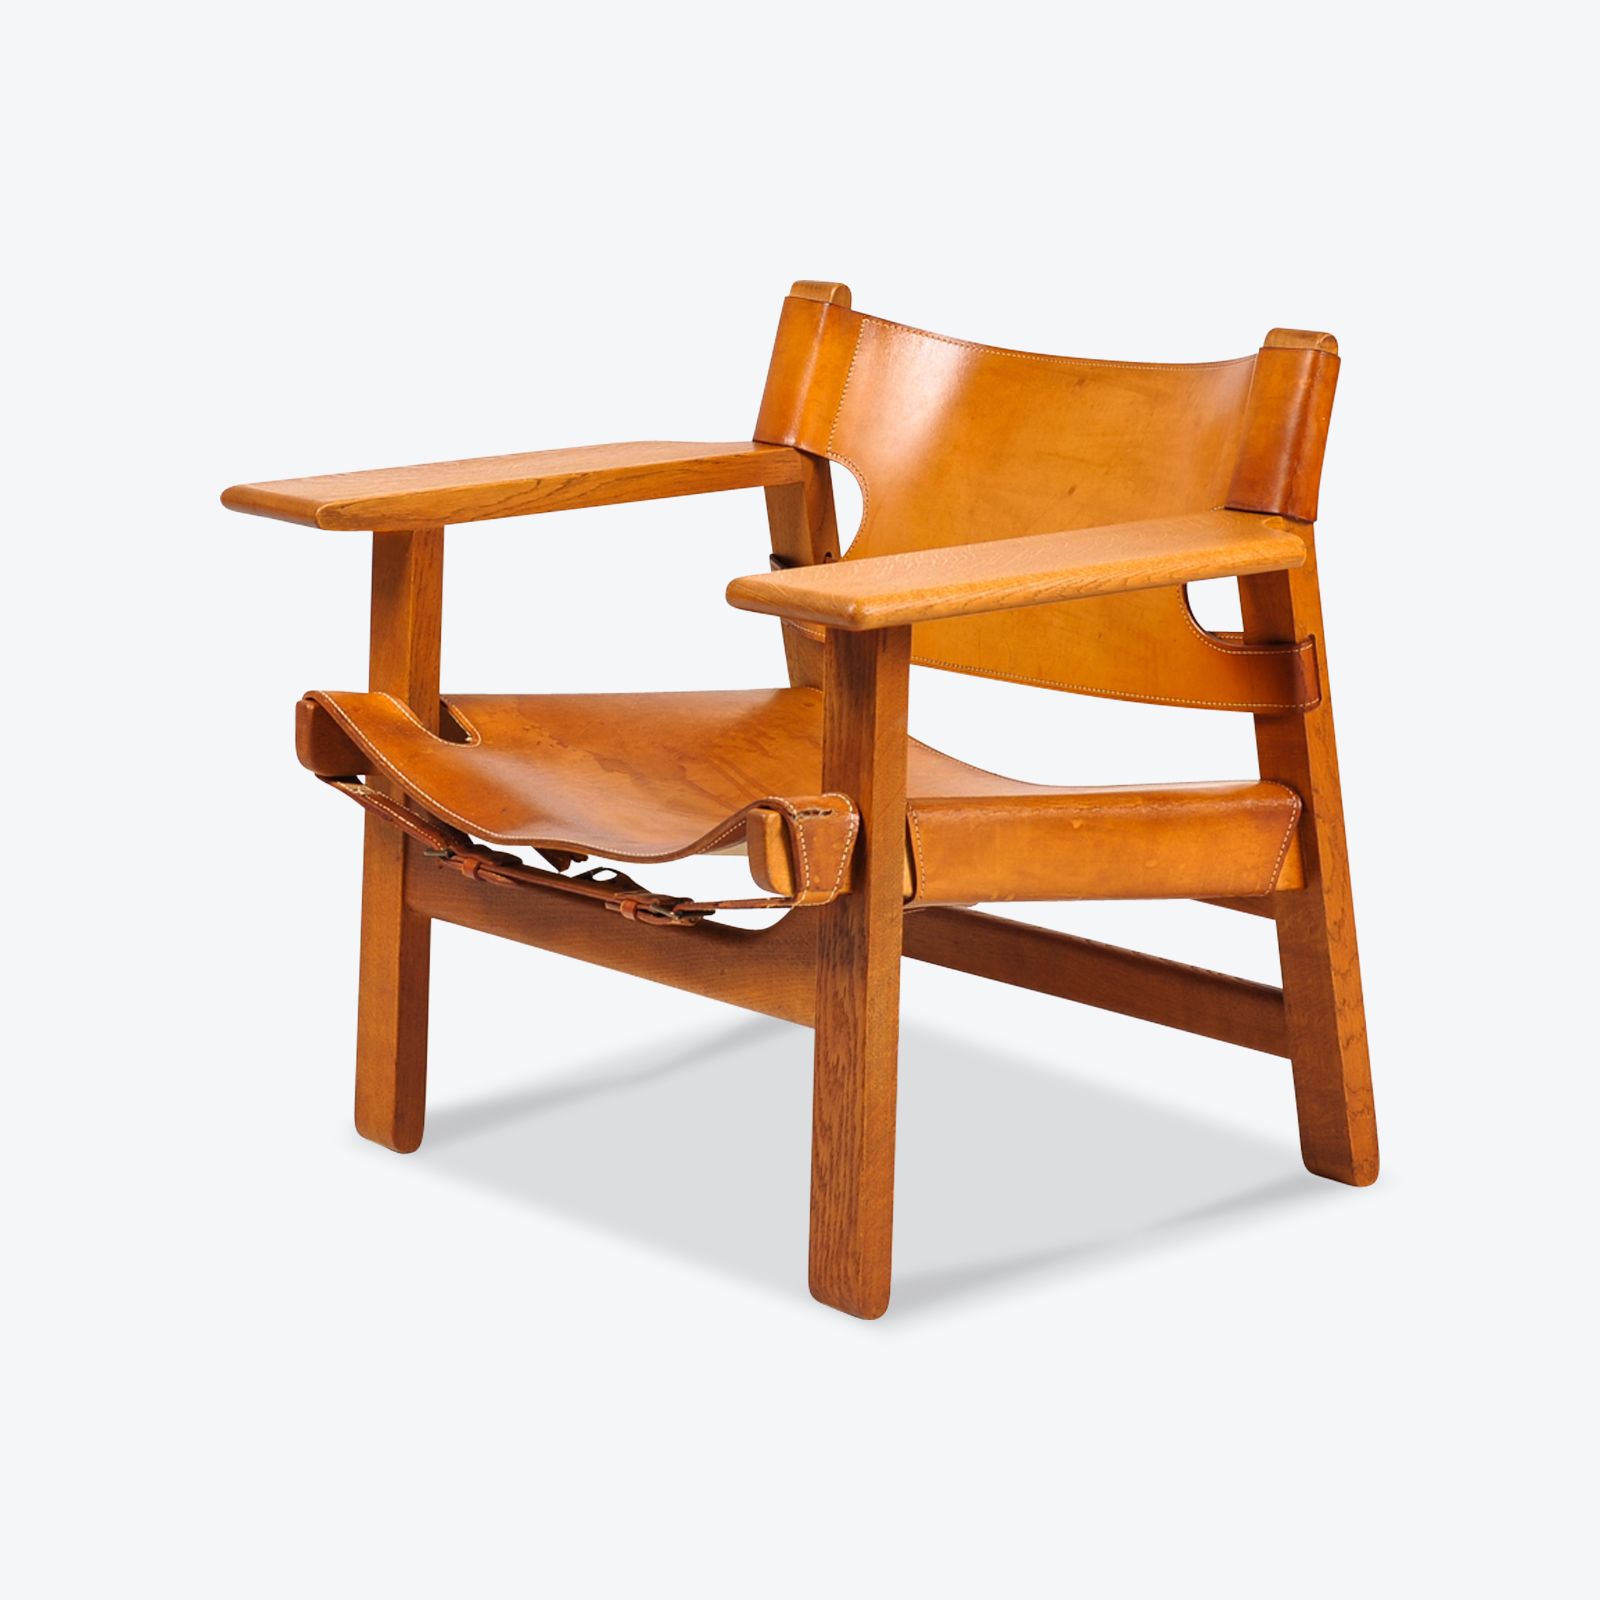 Spanish Chair By Borge Mogensen For Fredericia In Tan Leather 1950s Denmark 00